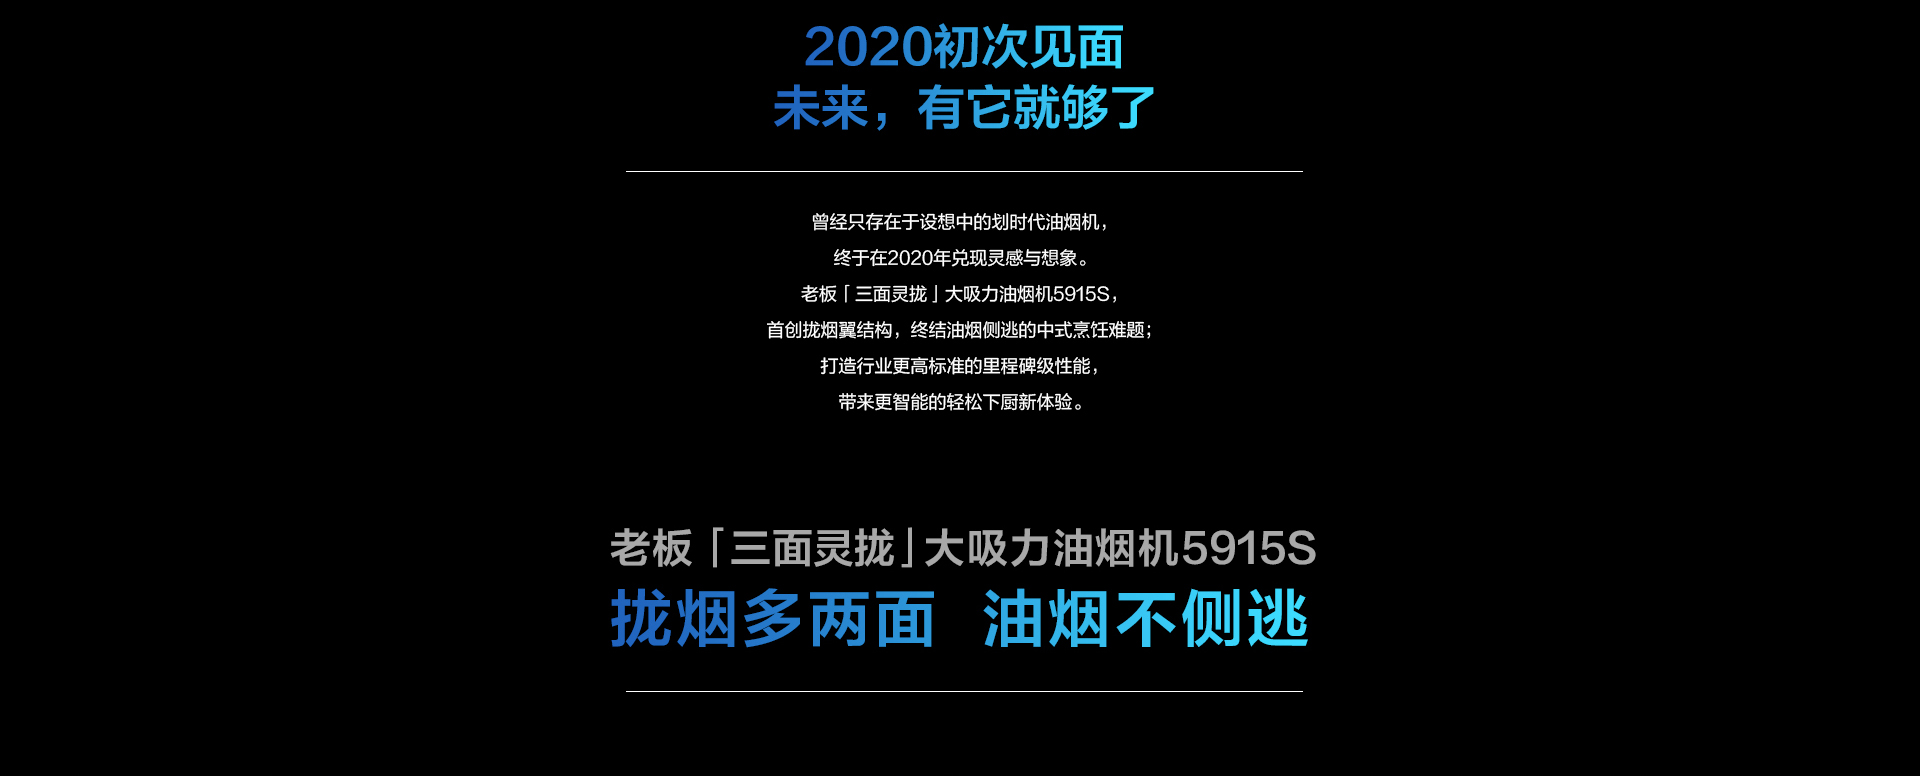 5915S-pc_02.png